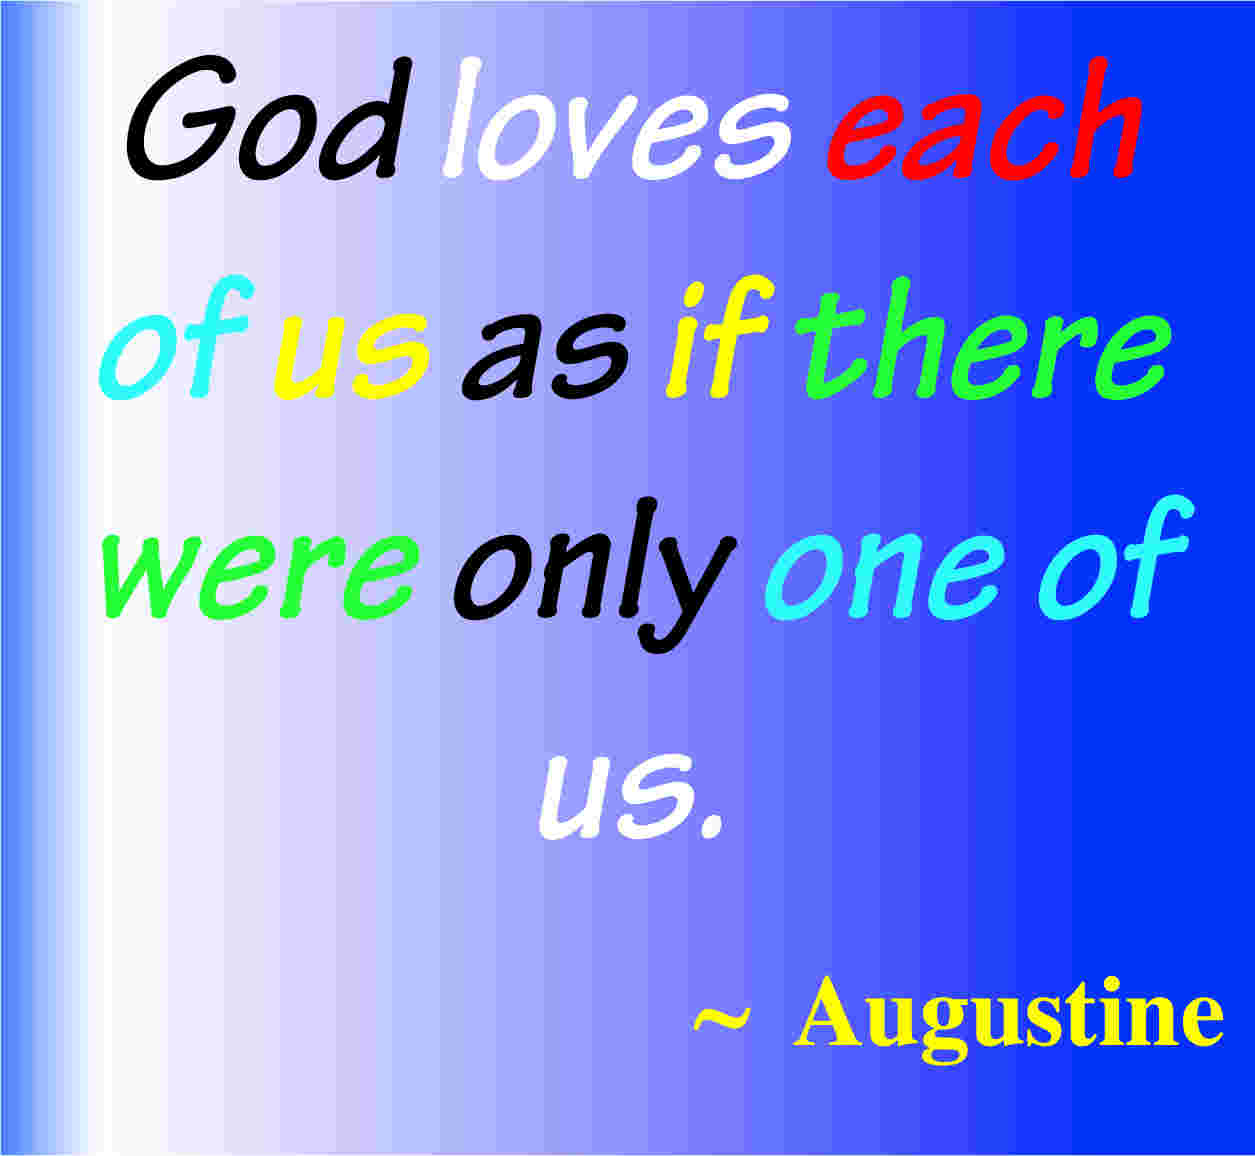 Love Quotes From The Bible Simple 20 Inspirational Bible Verses About God's Love